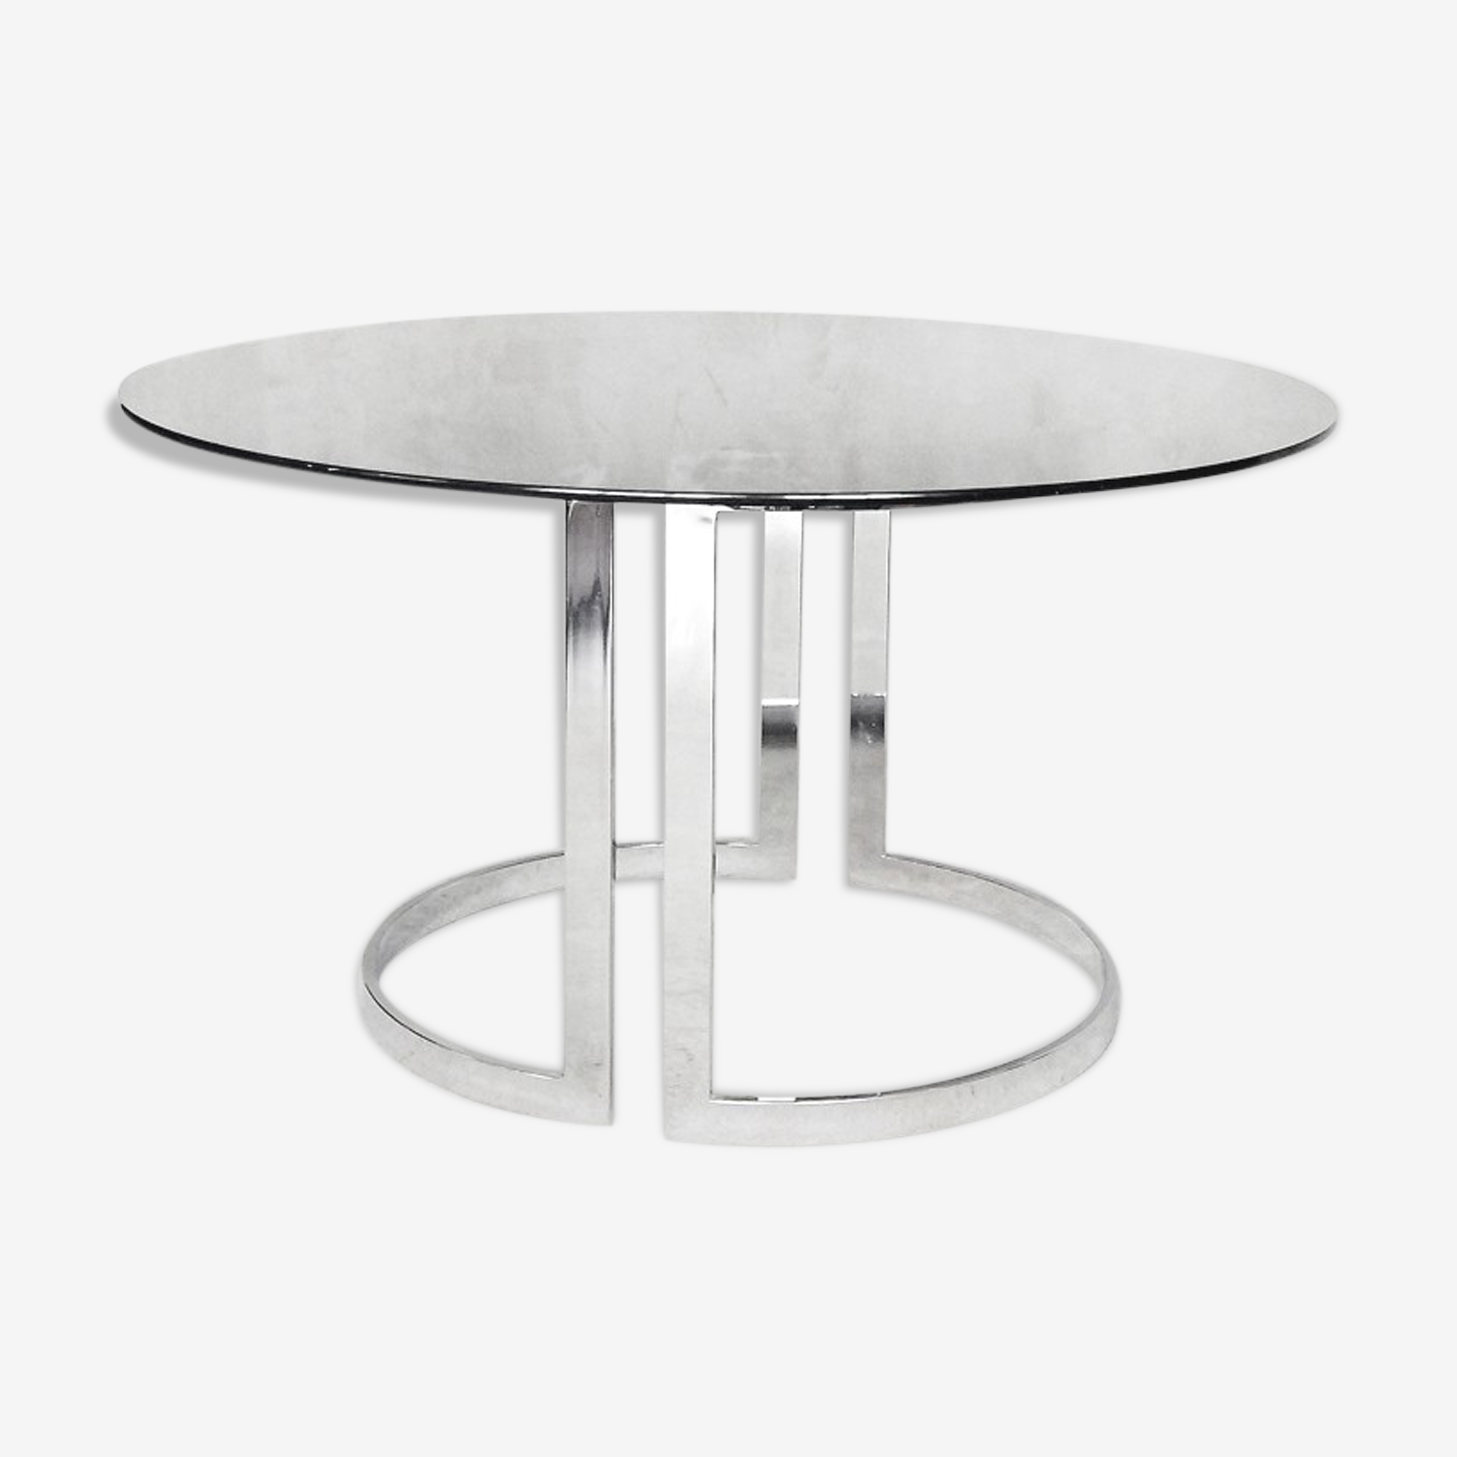 Glass round dining table by Milo Baughman 1970s